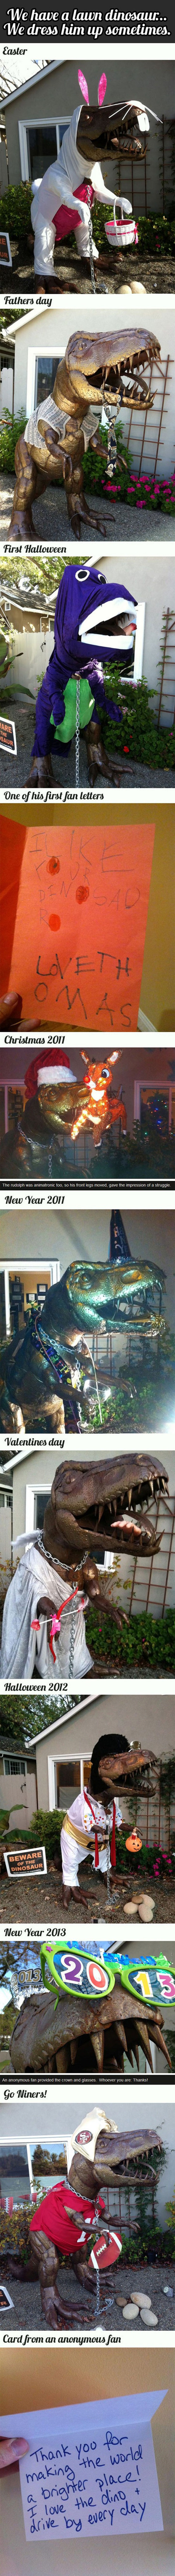 funny pictures, lawn dinosaur